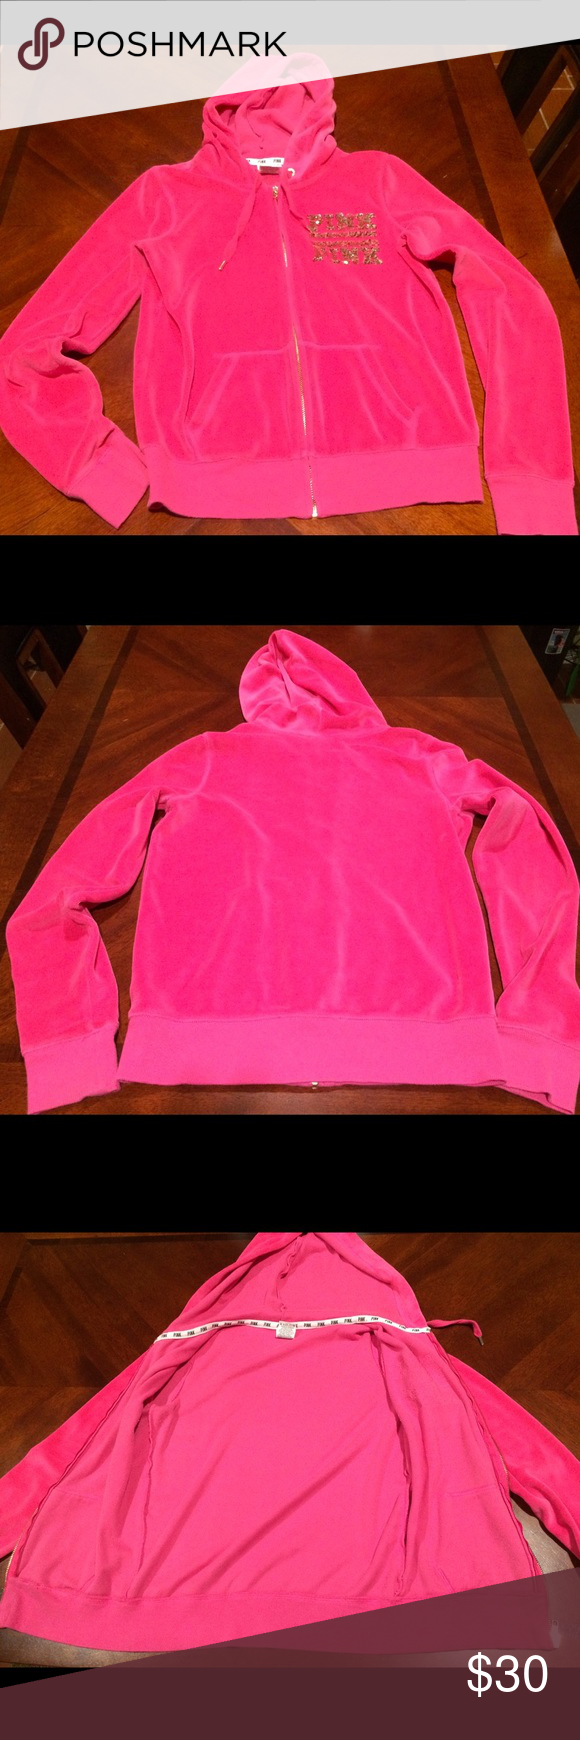 Hot Pink Bling Velour Sweater Used Hot Pink Velour Sweater, Size Small, Pink Logo Bling PINK Victoria's Secret Sweaters